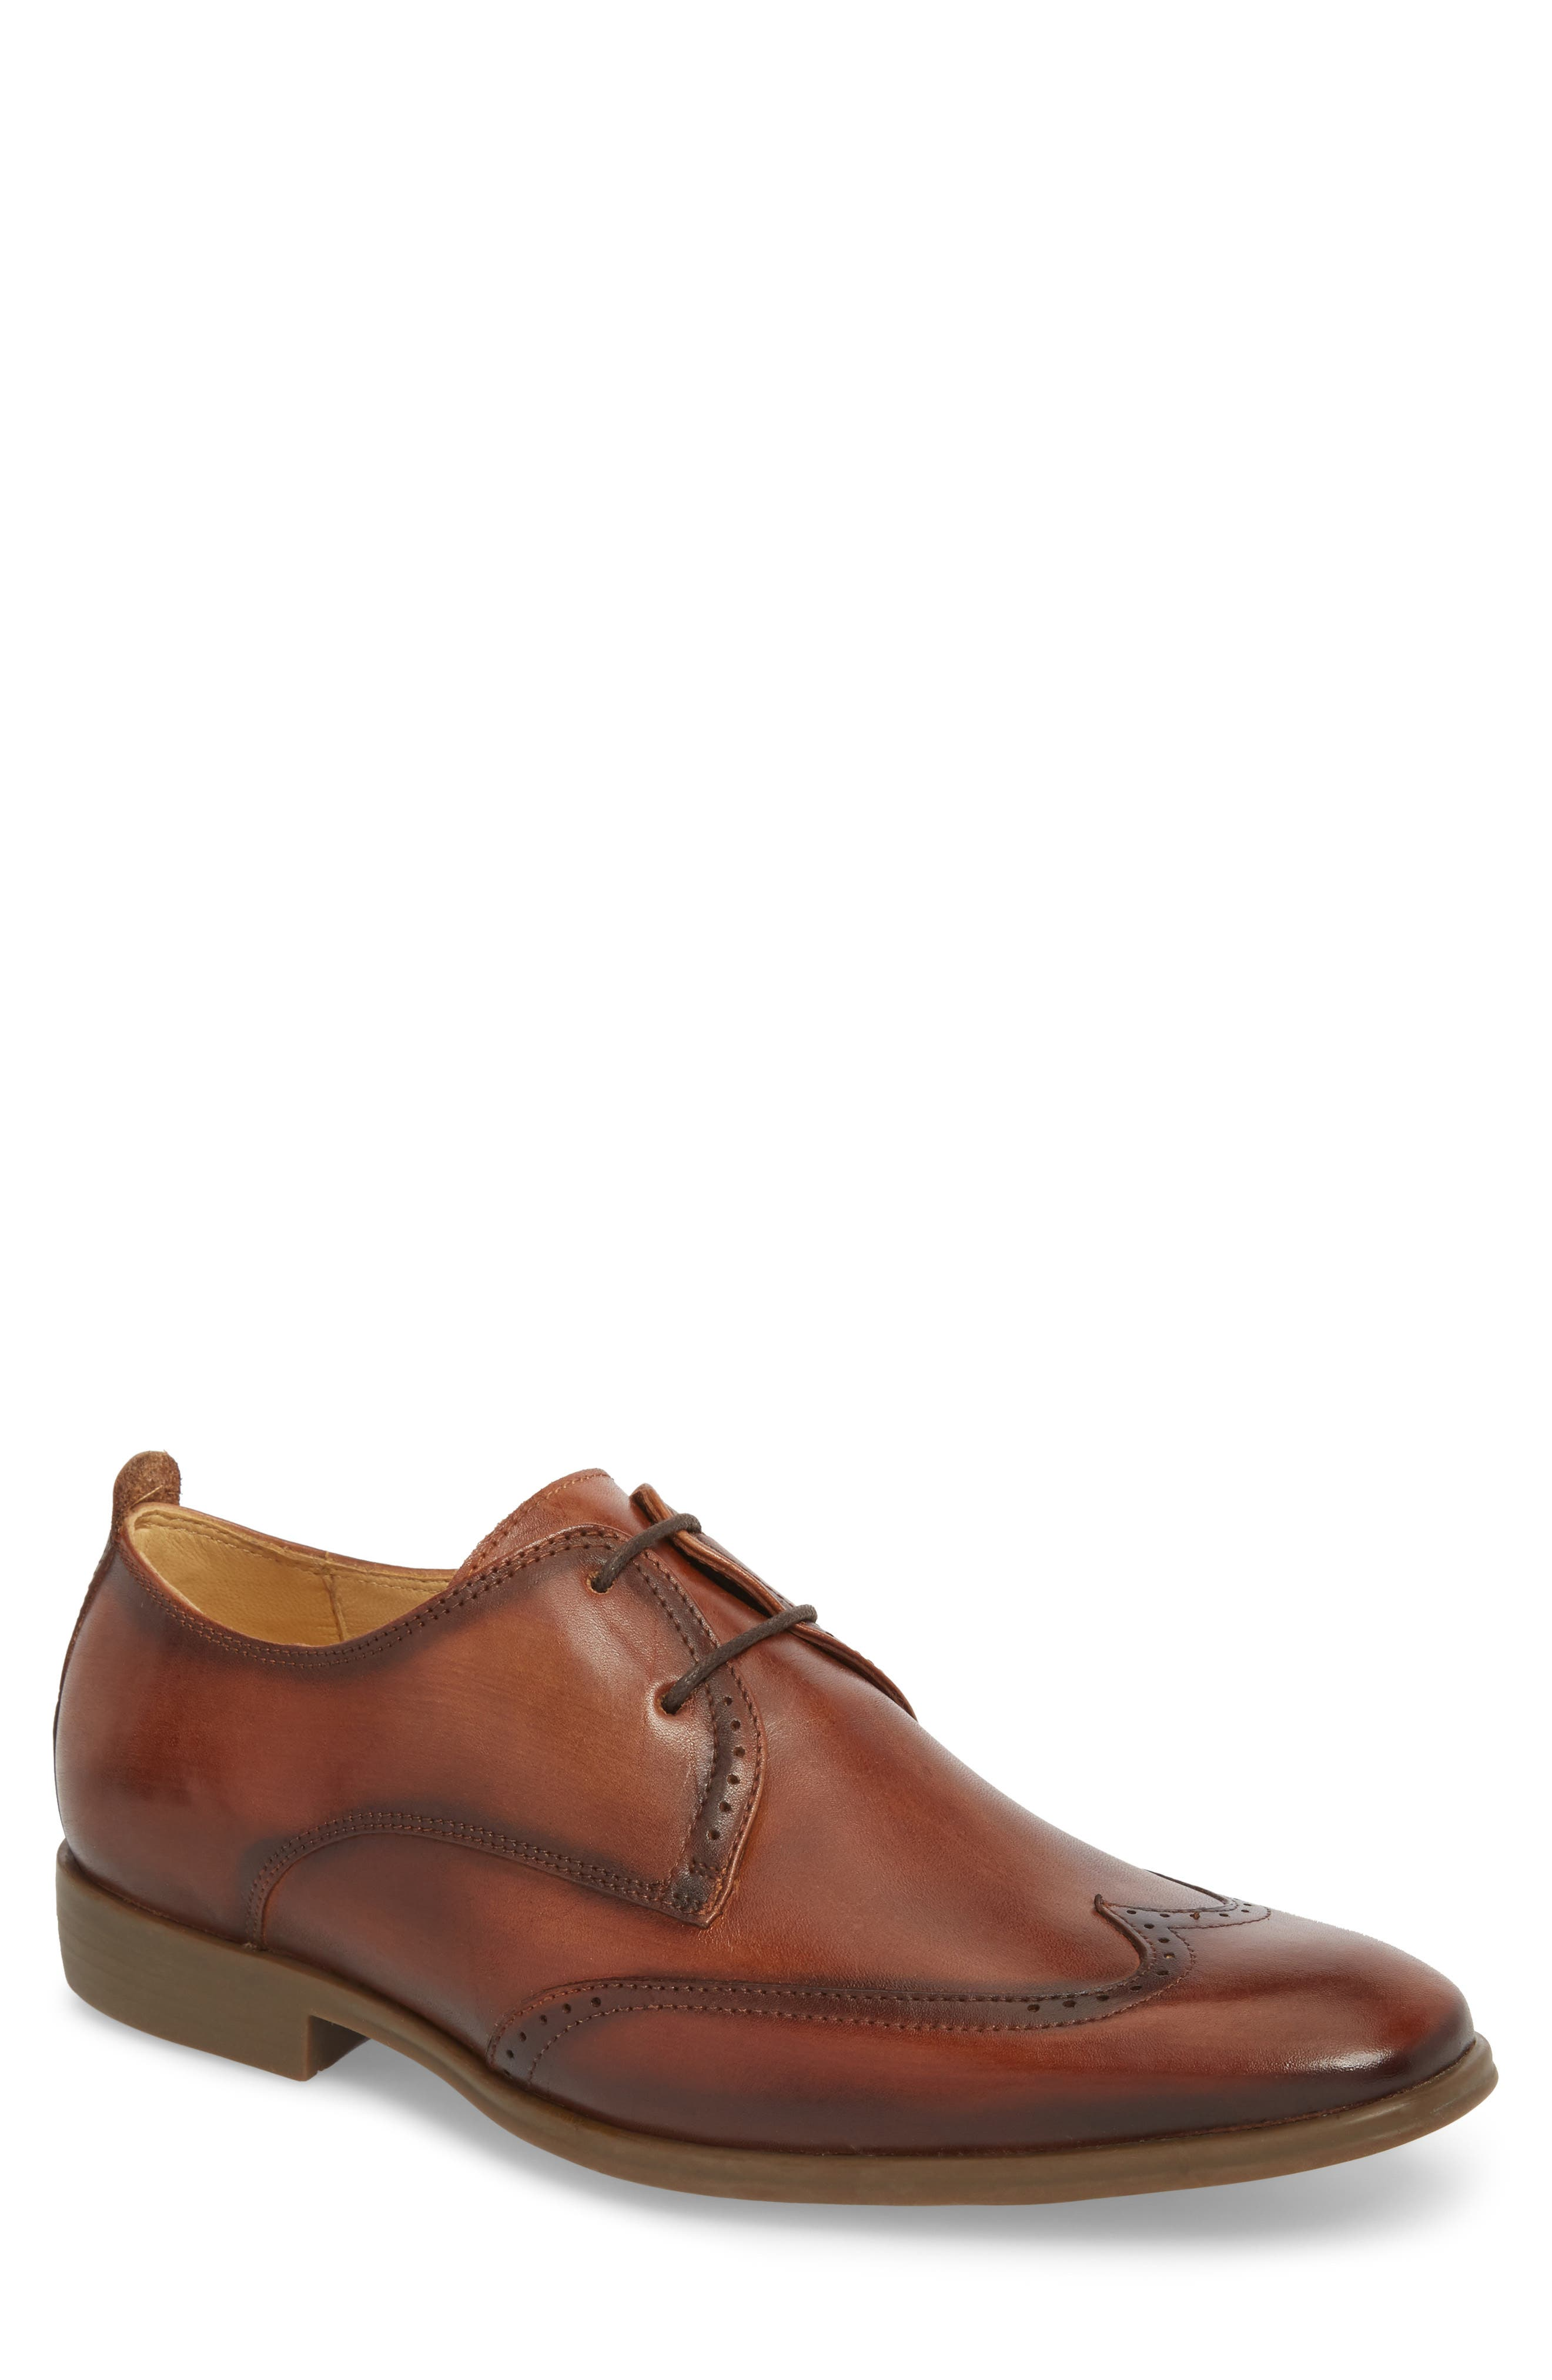 Ben Wingtip Derby,                             Main thumbnail 1, color,                             TOUCH BRONZE BRUSHED LEATHER